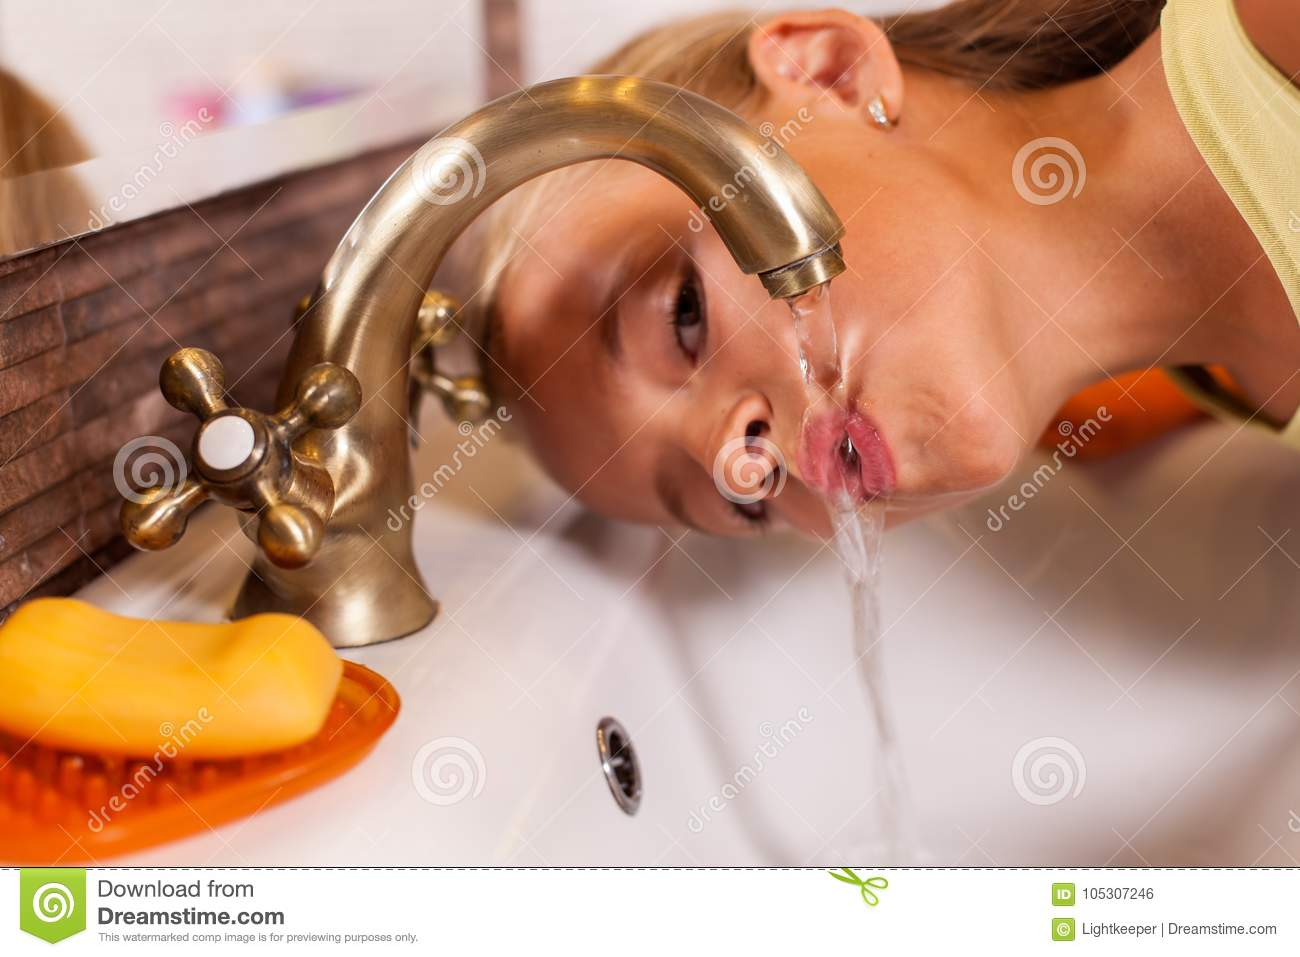 Young girl drinking from the bathroom faucet